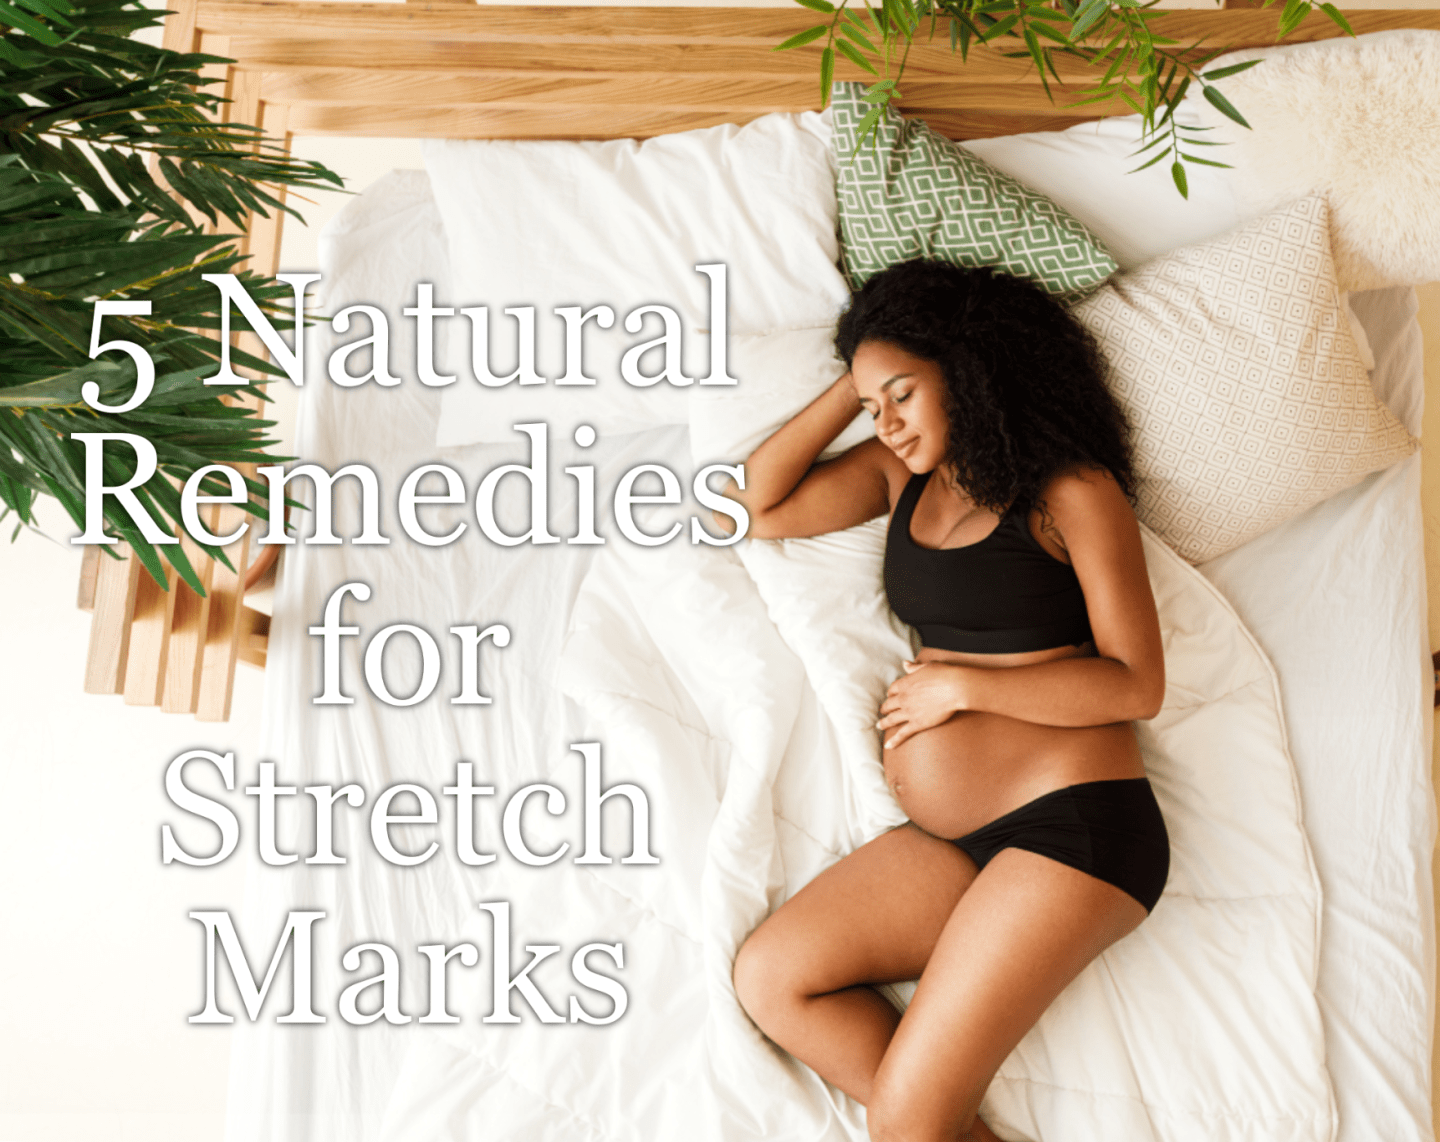 Stretch Marks are unattractive but natural for many women during pregnancy. We have some natural remedies for treating and fading them.